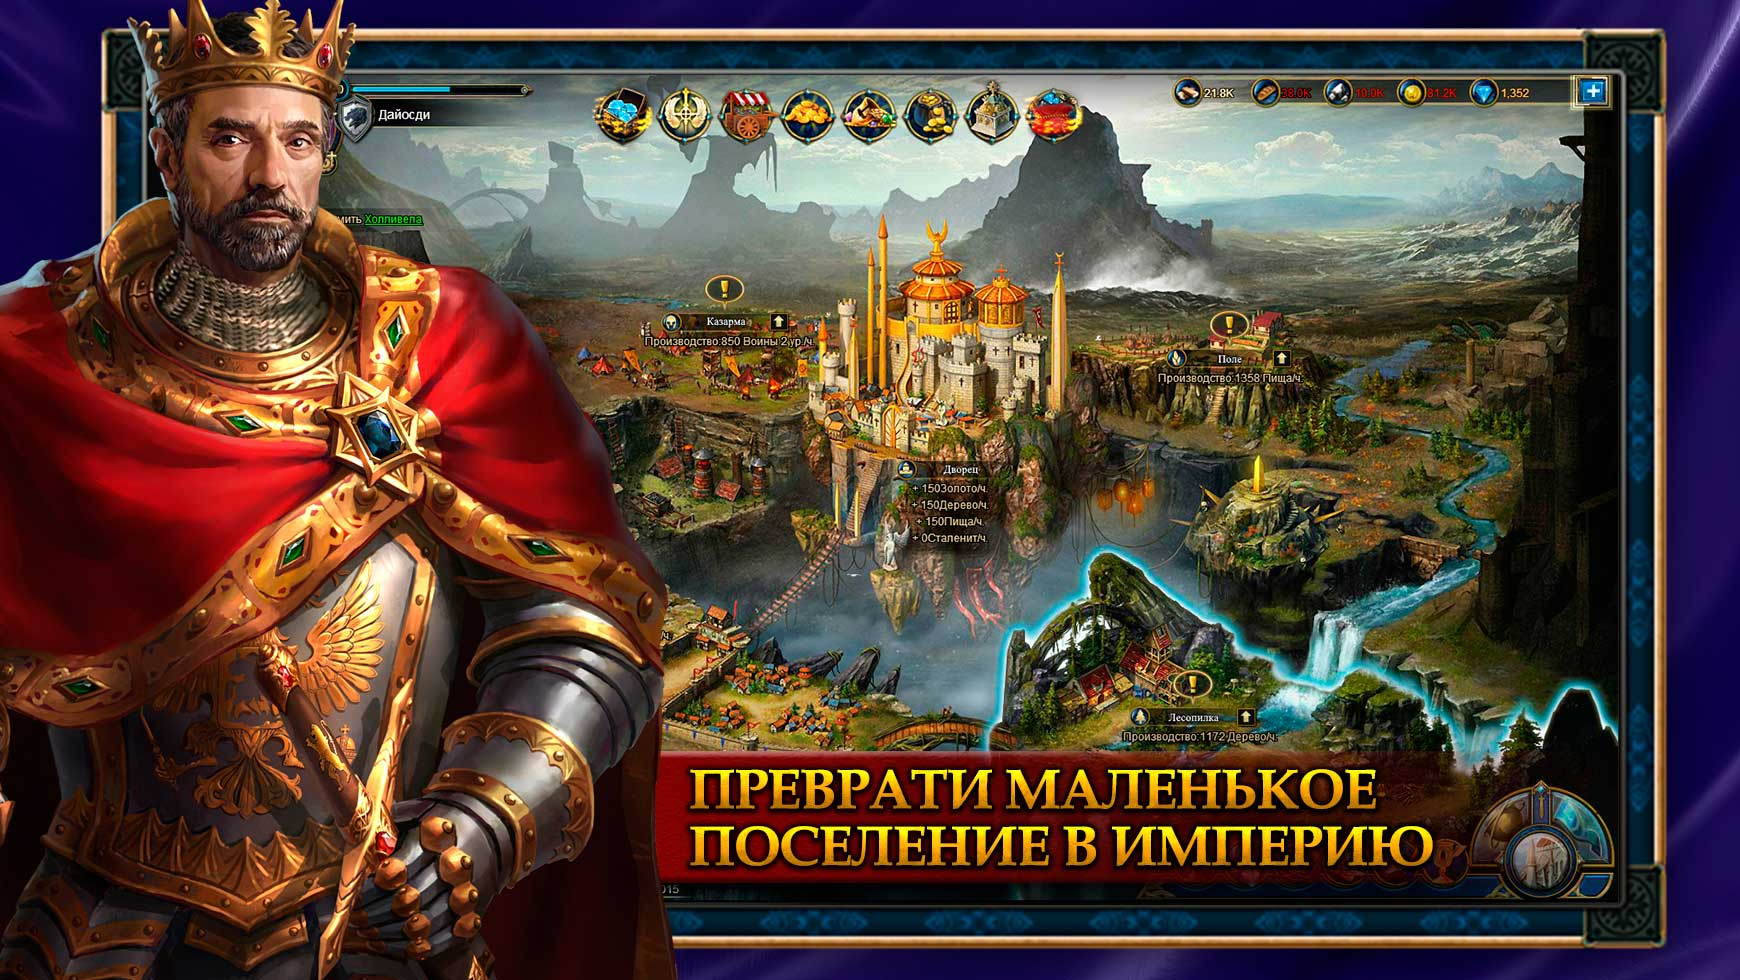 game_imperia_gameli-2f